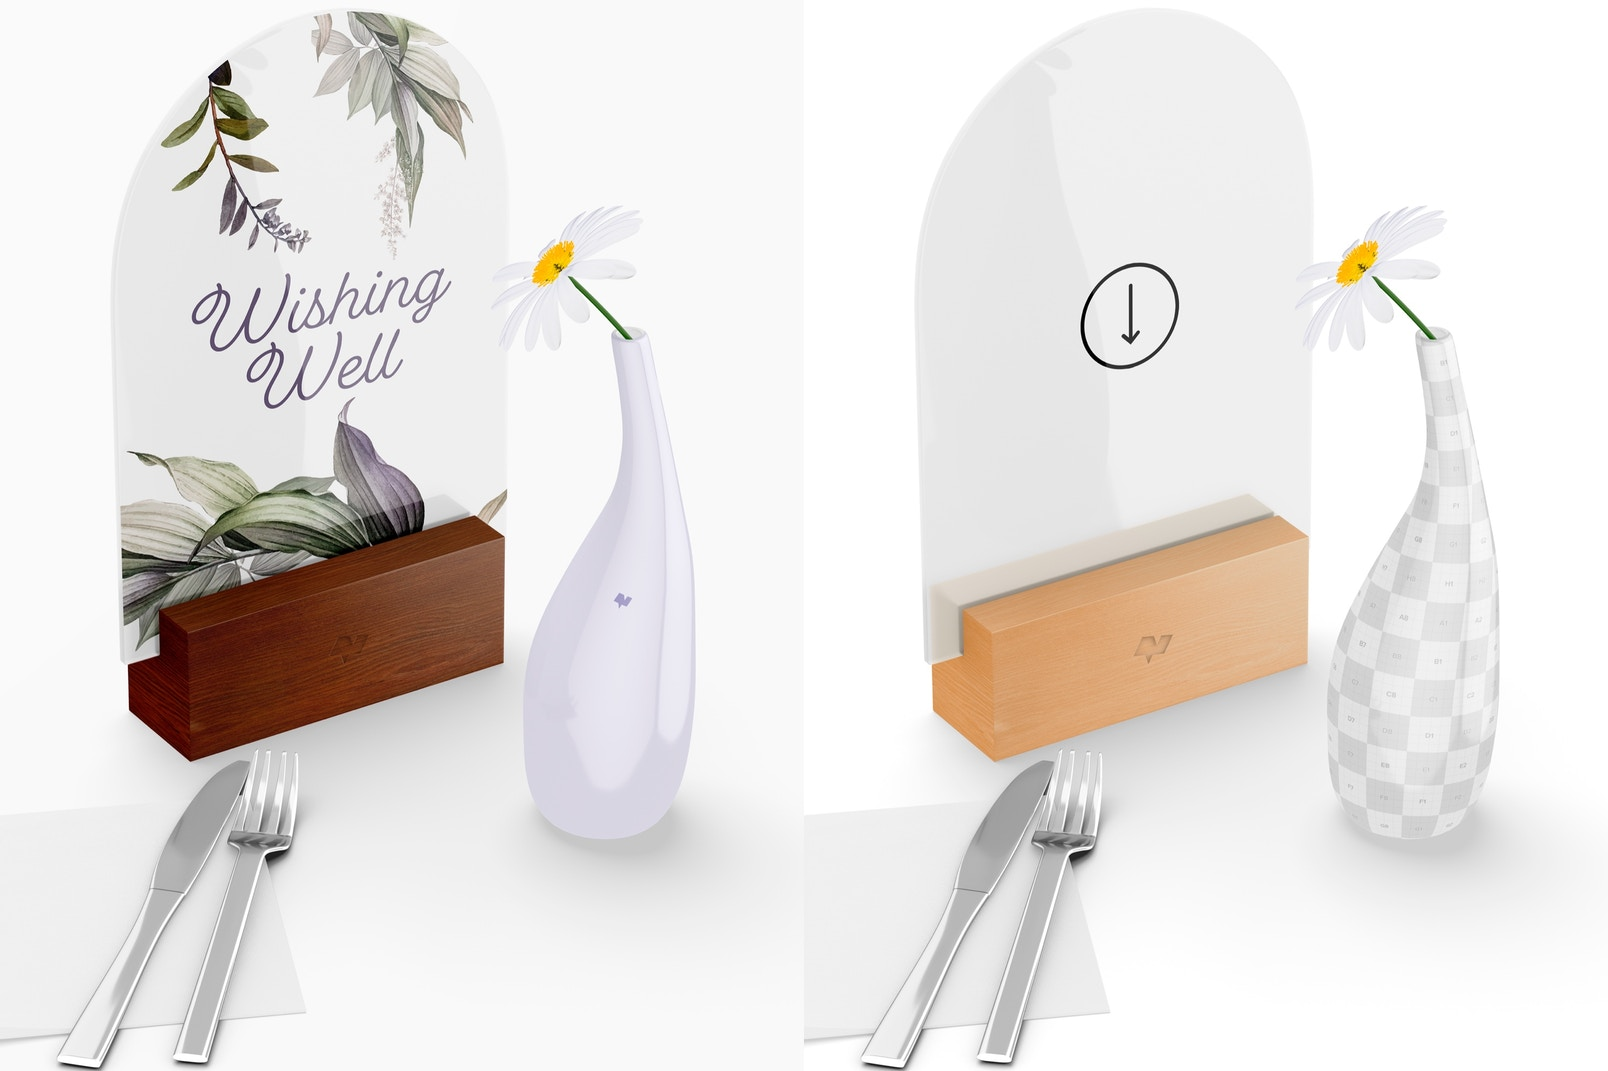 Acrylic Arch Table Sign Mockup, Top View